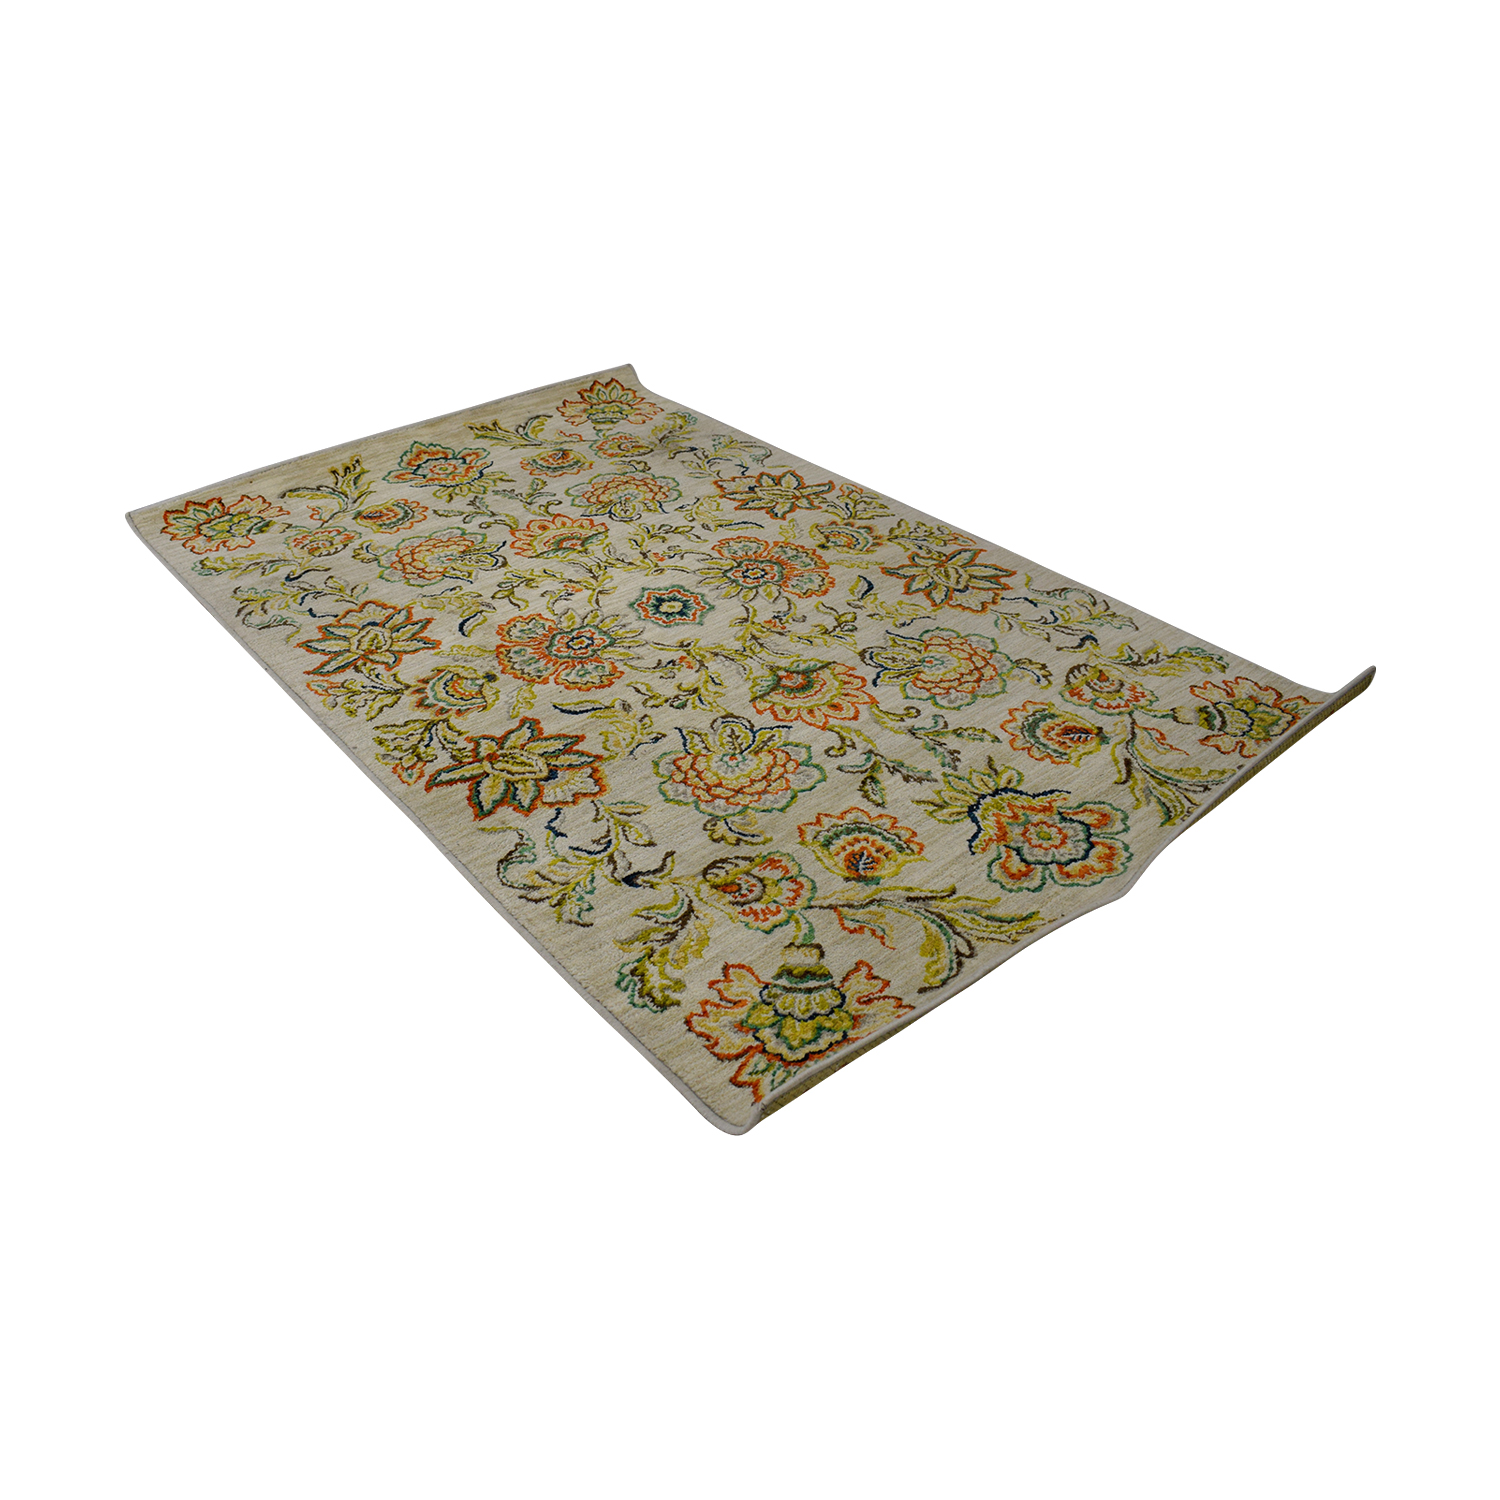 buy Wayfair Beige Multi-Colored Floral Rug Wayfair